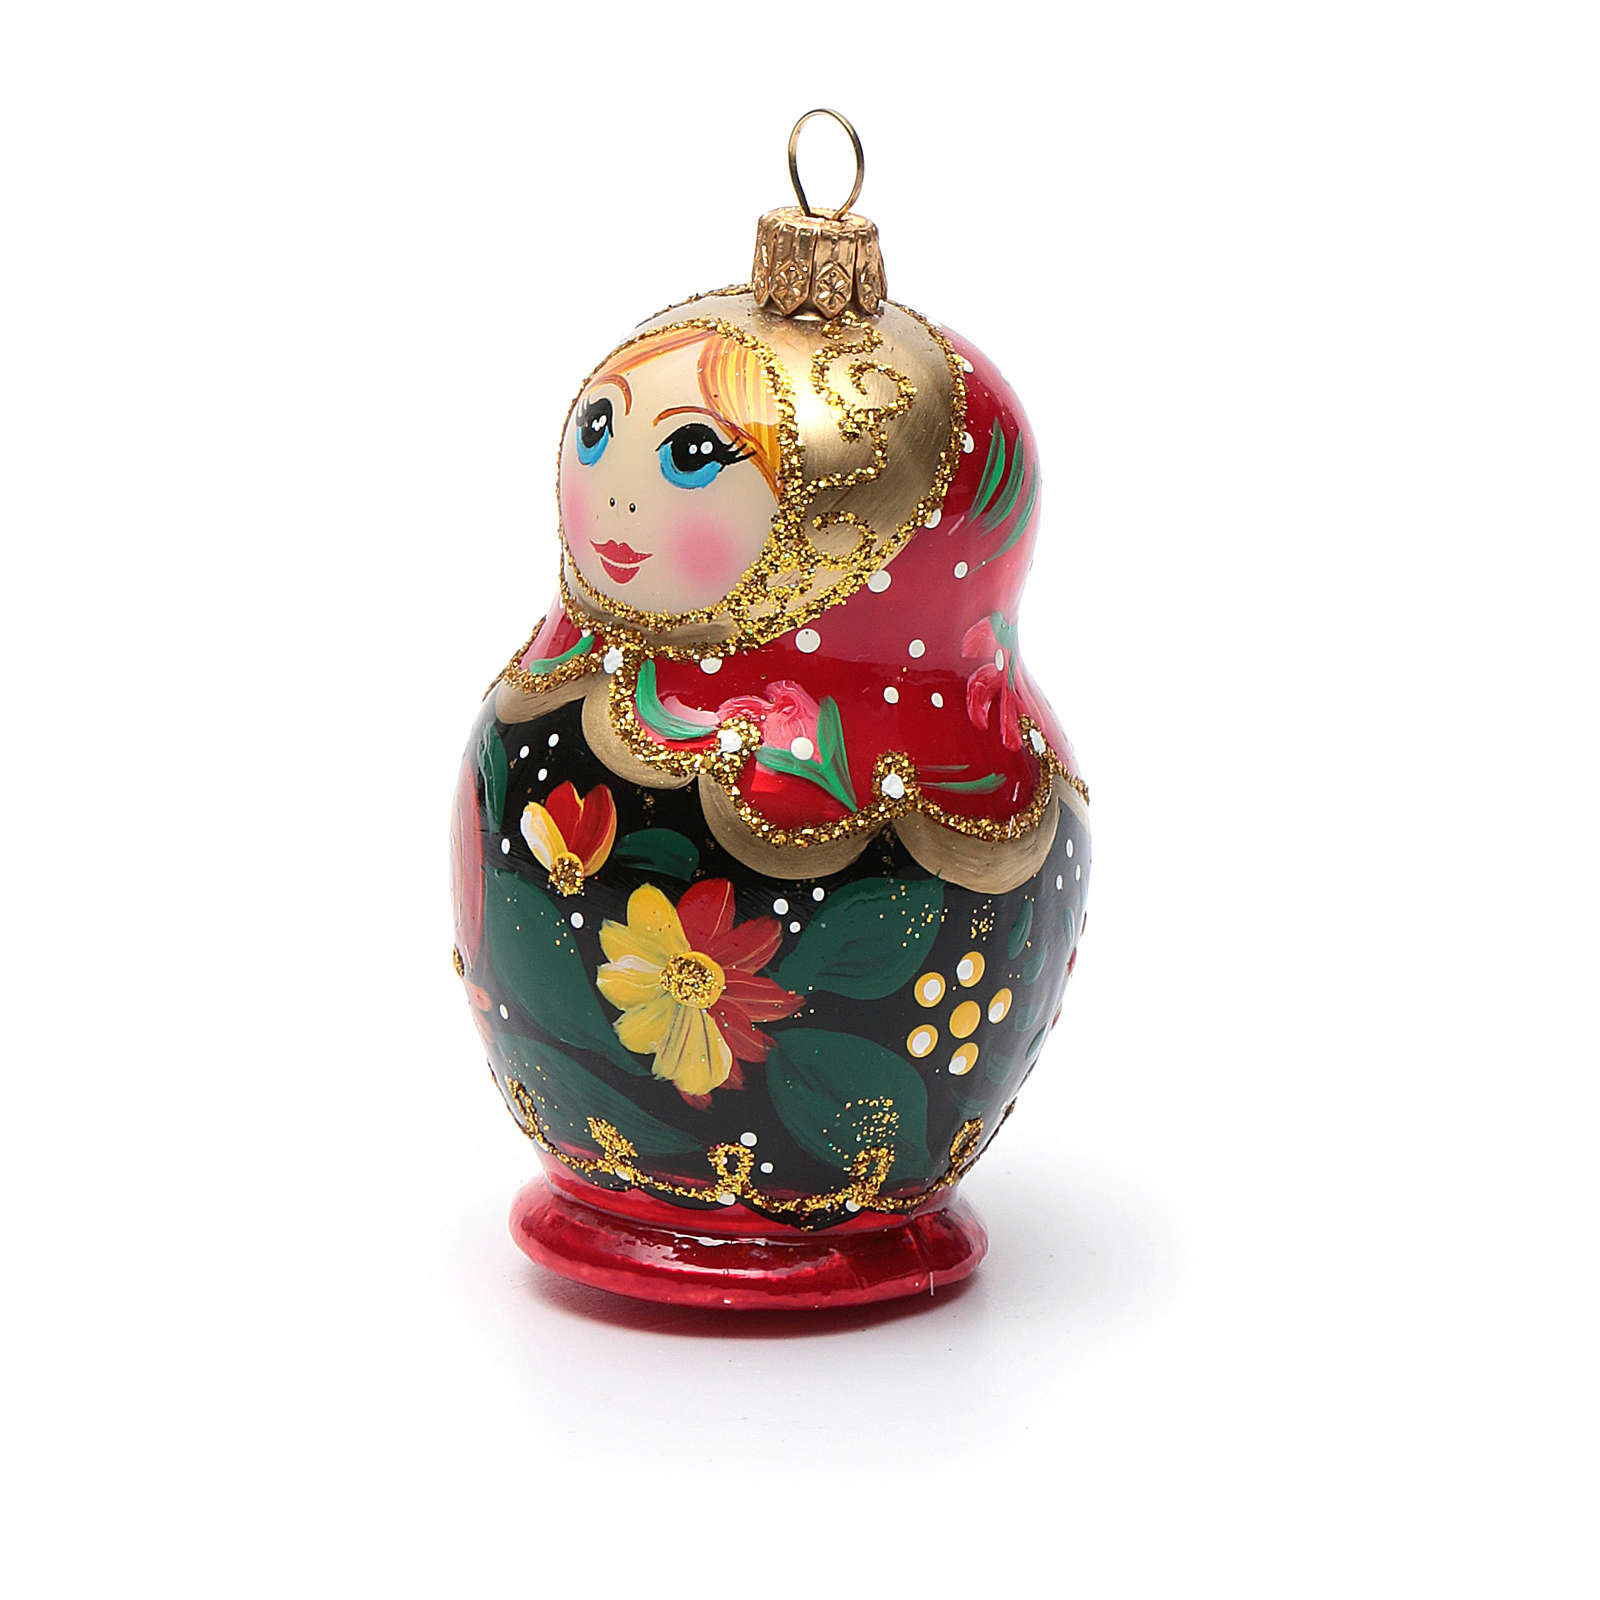 Blown glass Christmas ornament, matryoshka 4